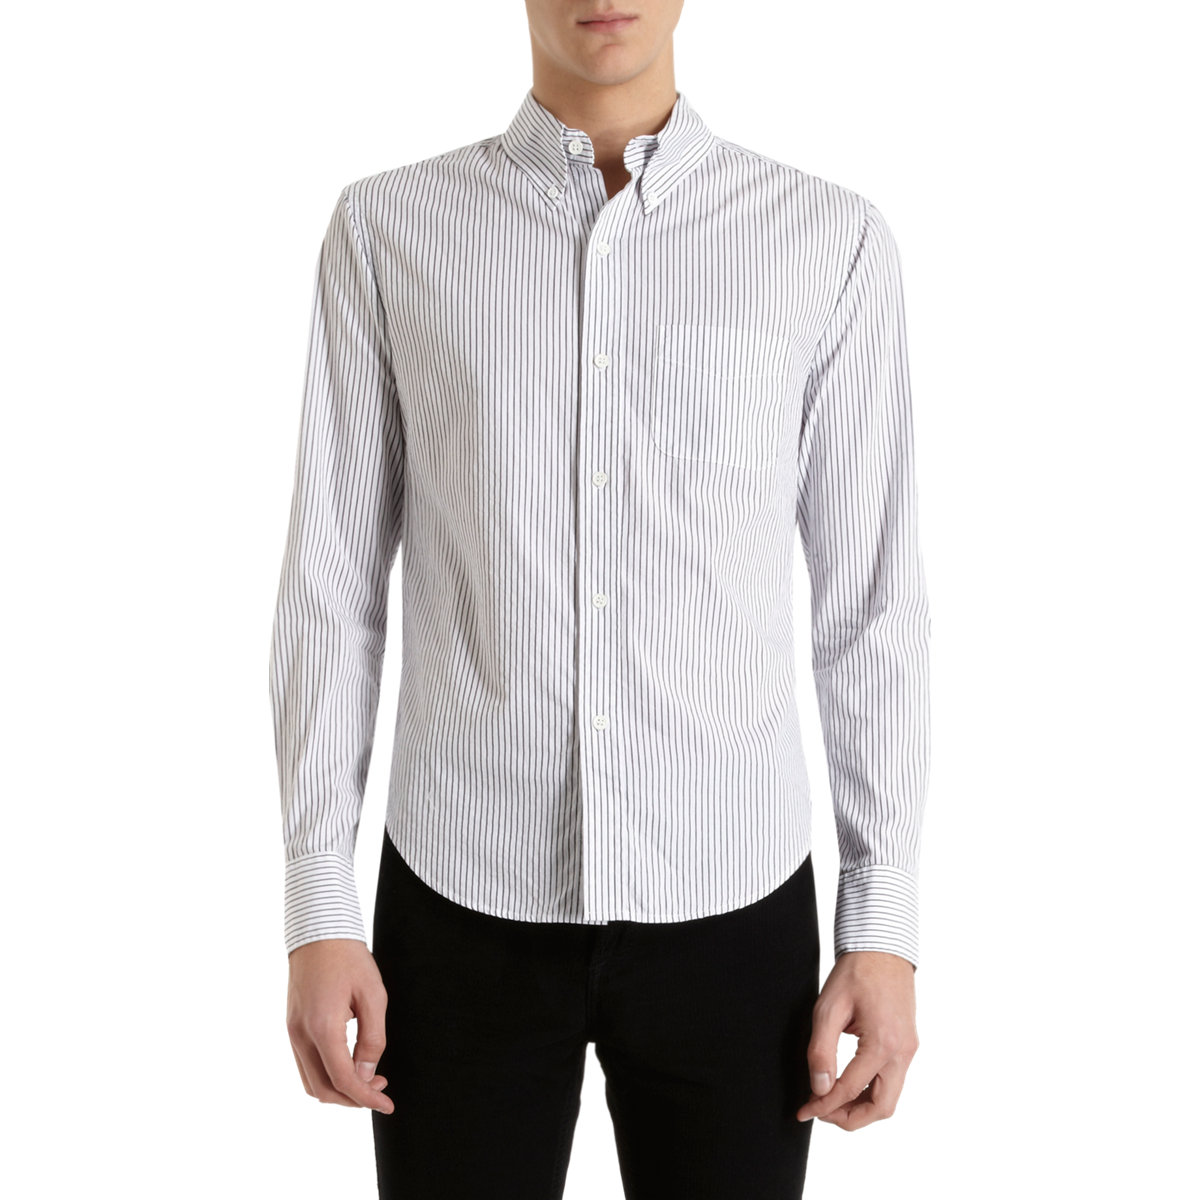 Best prices on Mens white no collar shirt in Men's Shirts online. Visit Bizrate to find the best deals on top brands. Read reviews on Clothing & Accessories merchants and buy with confidence.